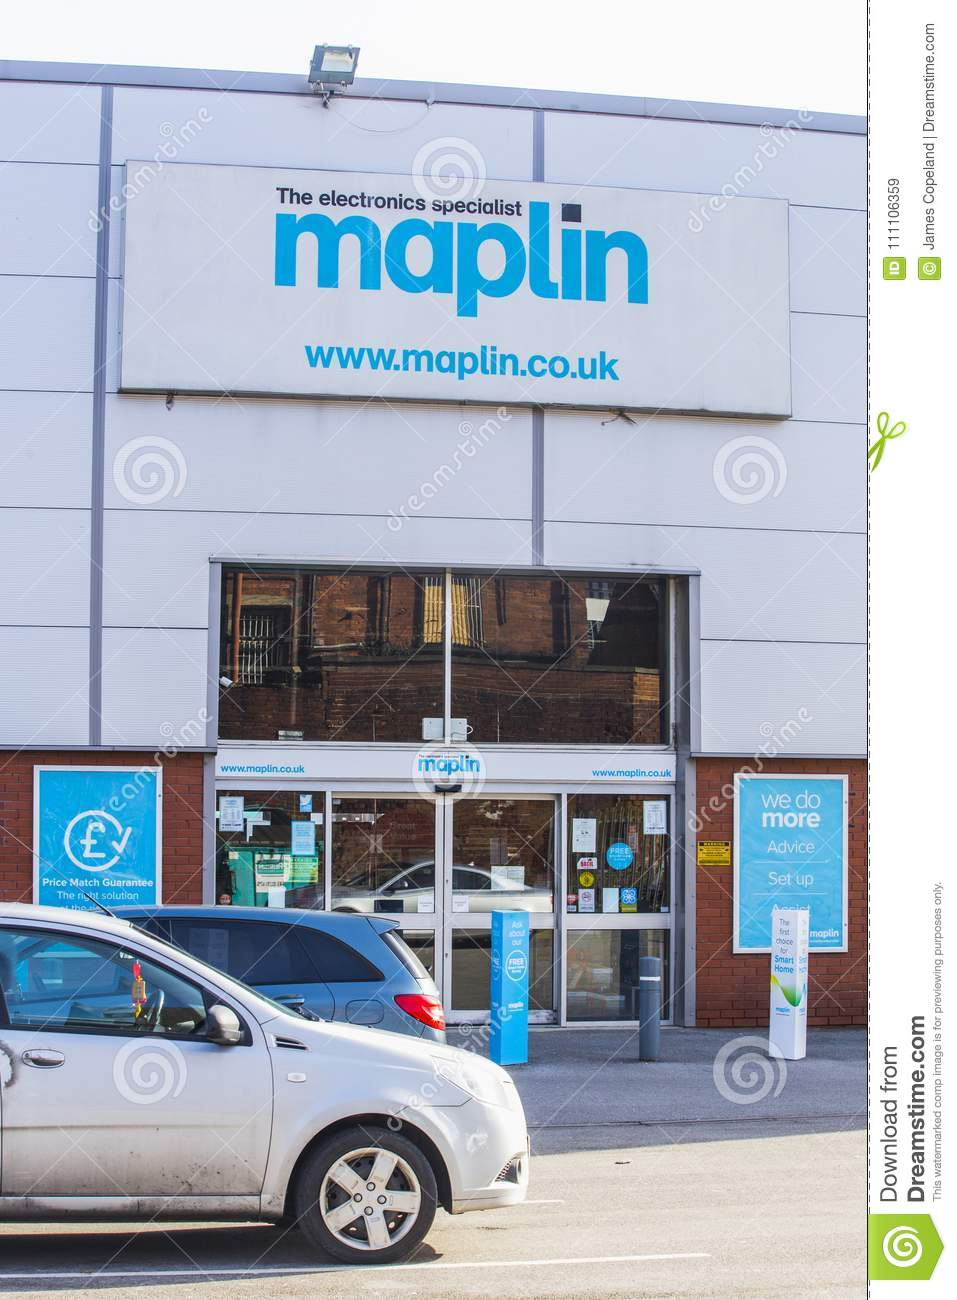 Maplin Electronics Store In Leeds, UK Editorial Stock Image